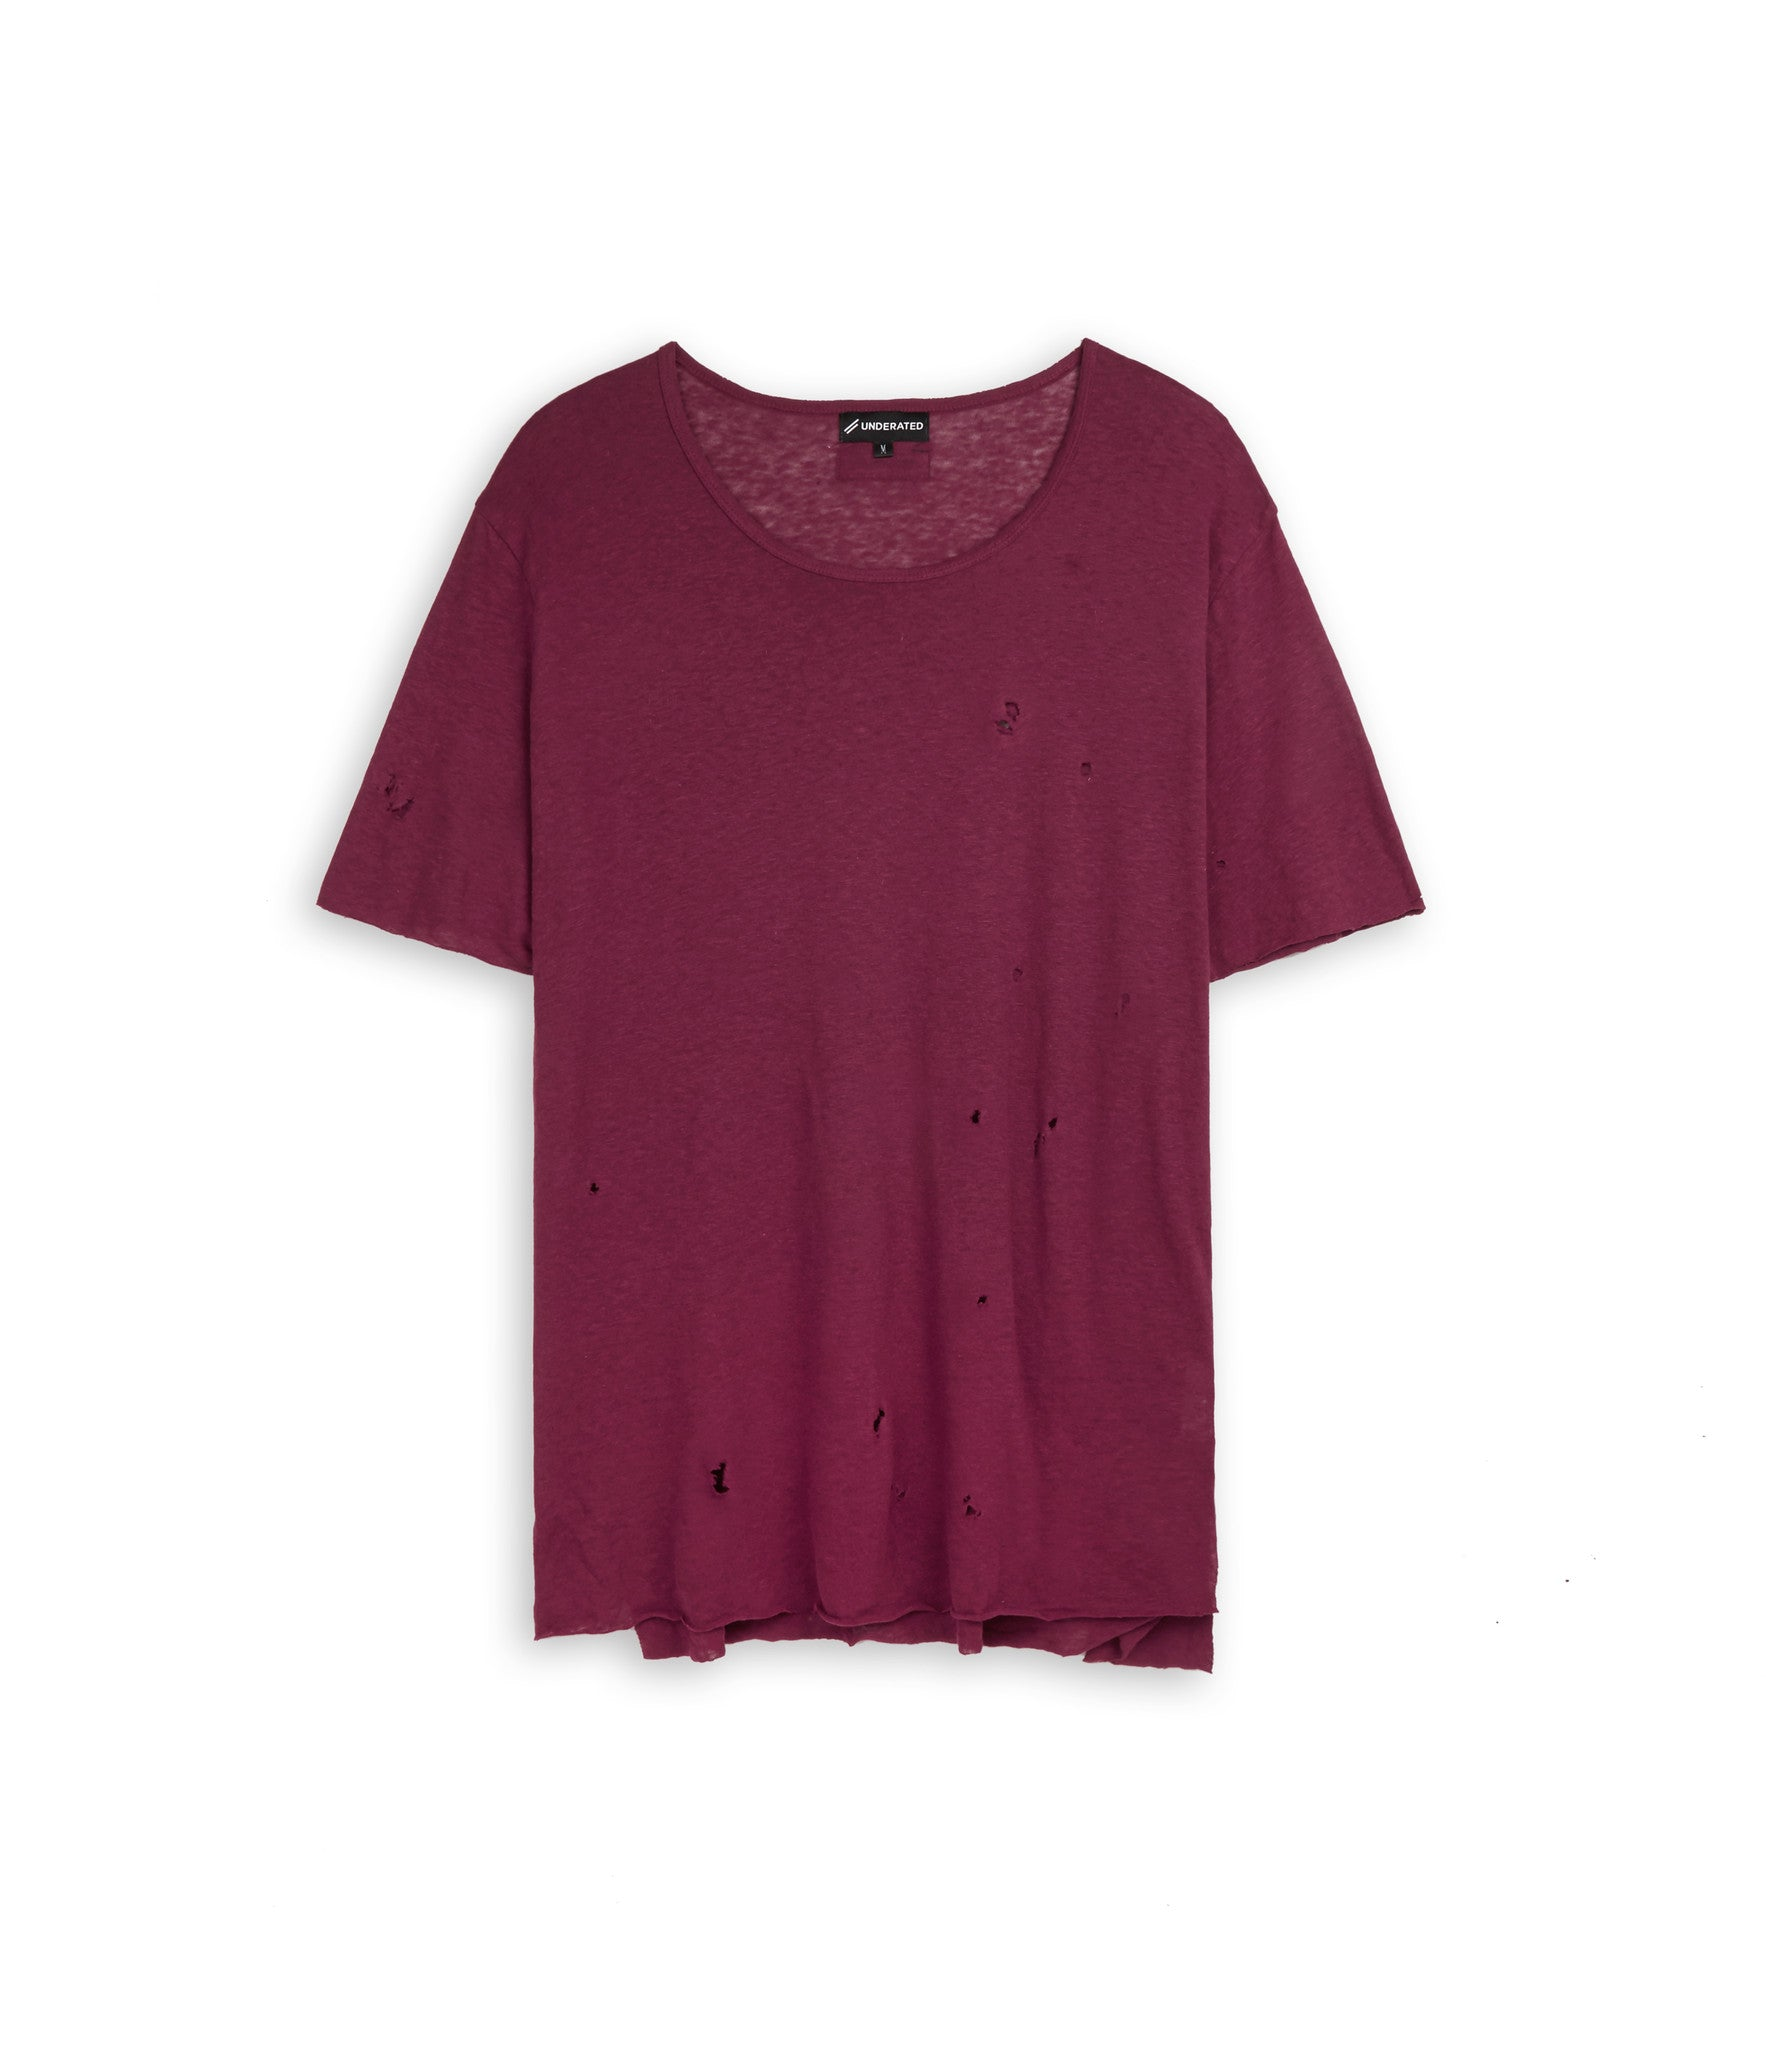 D10V2 Exile Distressed Tee - Oxblood - underated london - underatedco - 1